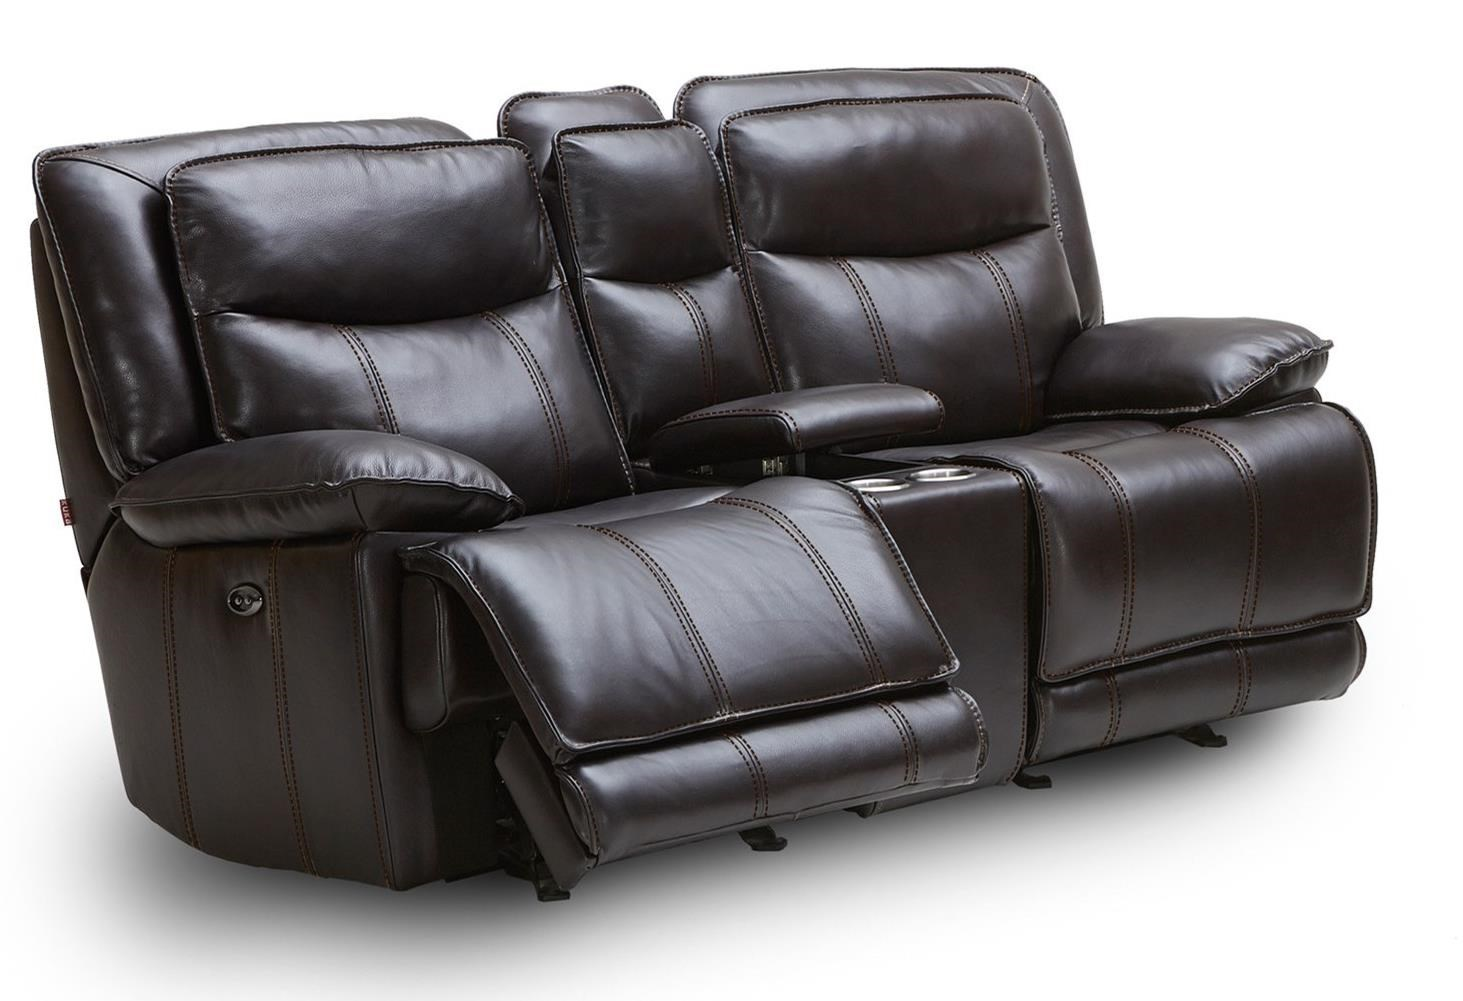 KM030 127112460 Casual Reclining Glider Loveseat with Drink Storage Console by Kuka Home  sc 1 st  Becku0027s Furniture & Kuka Home KM030 Casual Reclining Glider Loveseat with Drink ... islam-shia.org